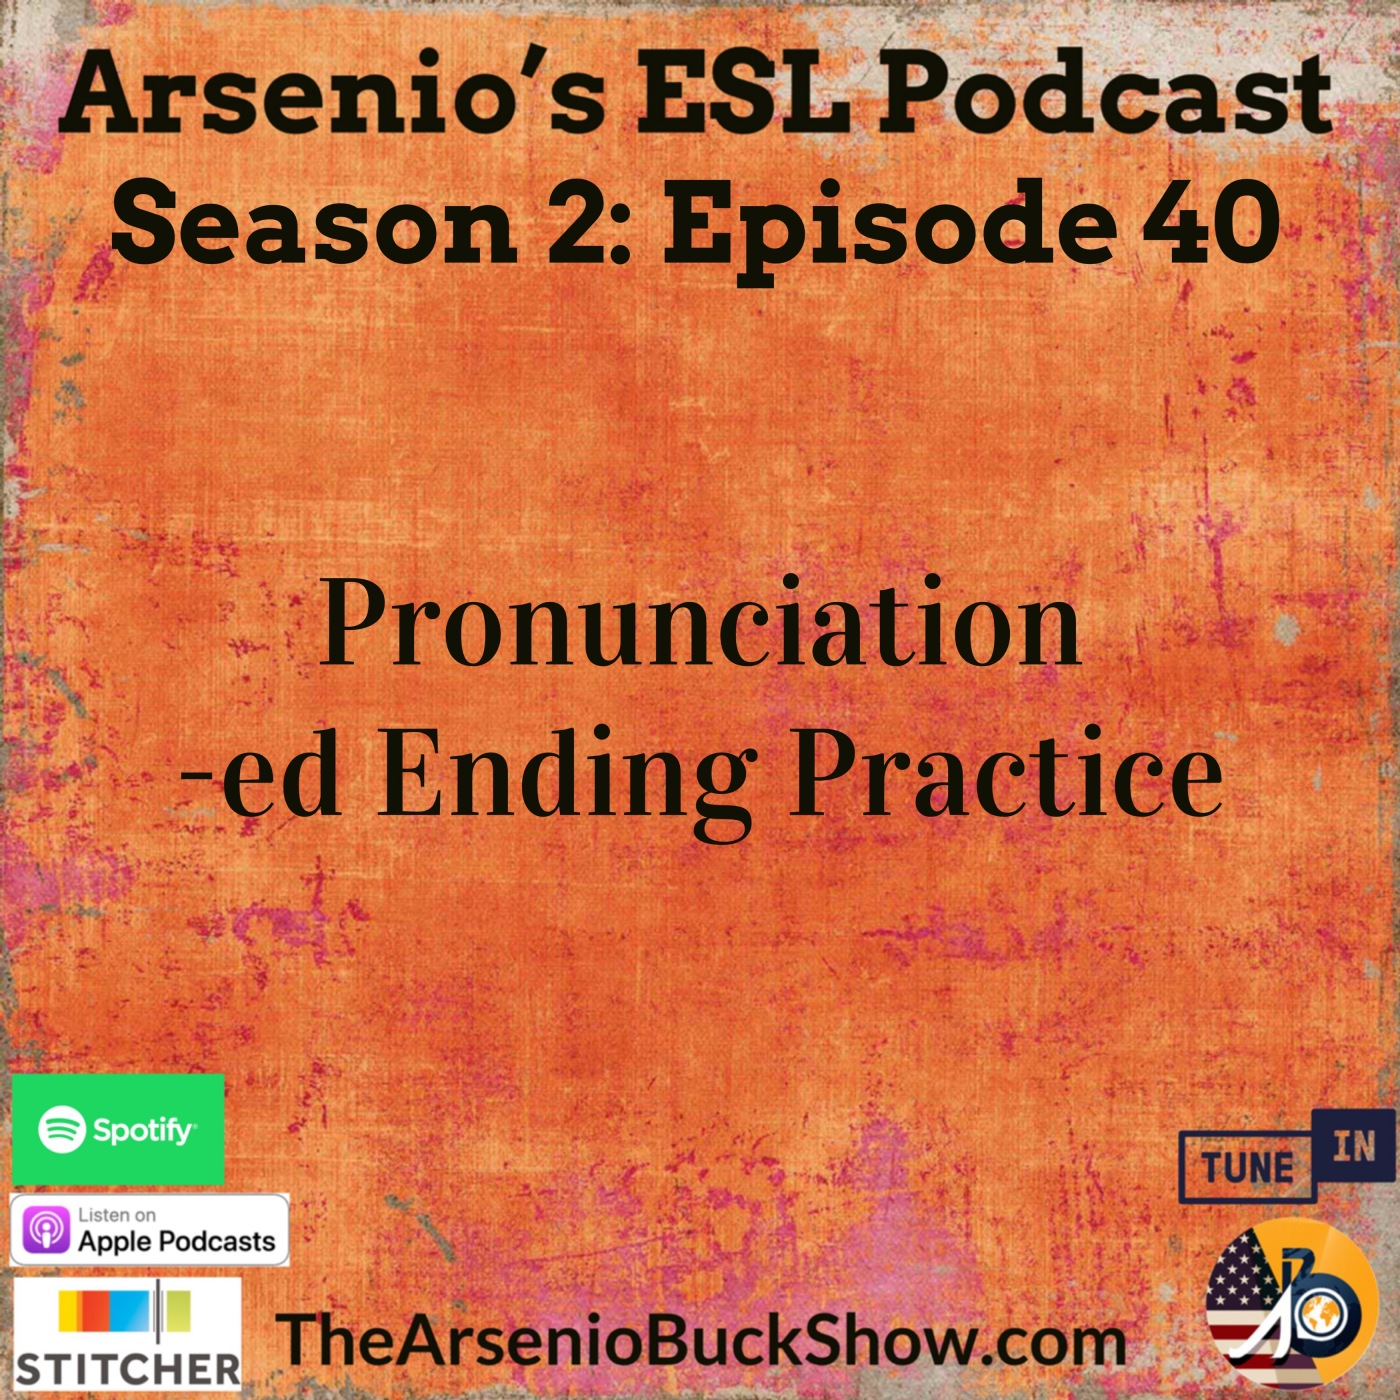 Arsenio's ESL Podcast: Season 2 – Episode 40 – Pronunciation